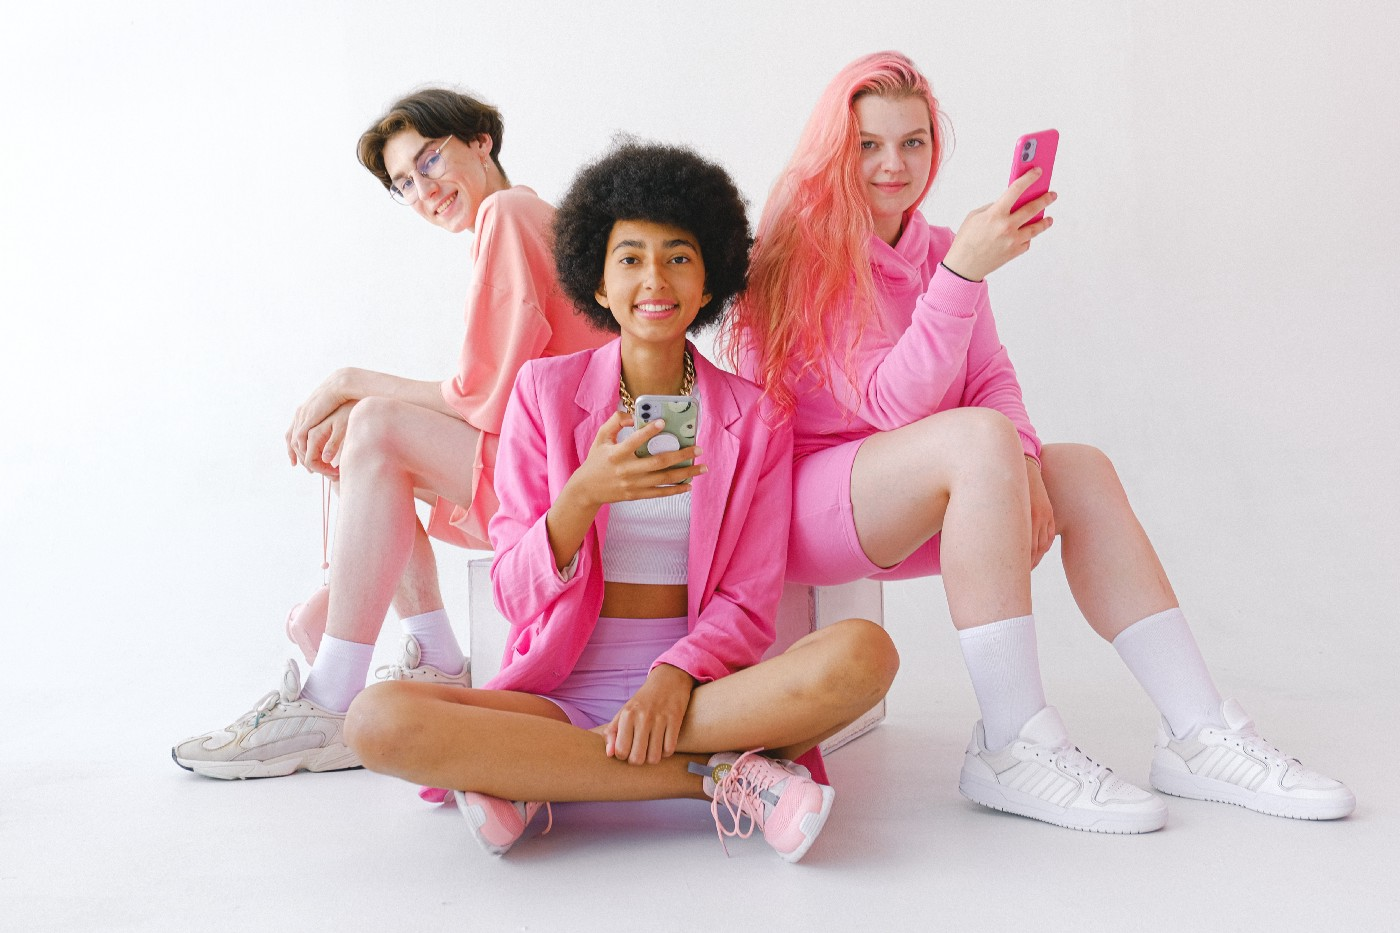 What is Clubhouse and How to Get an Invite—Three teens sitting together with phones in their hands.